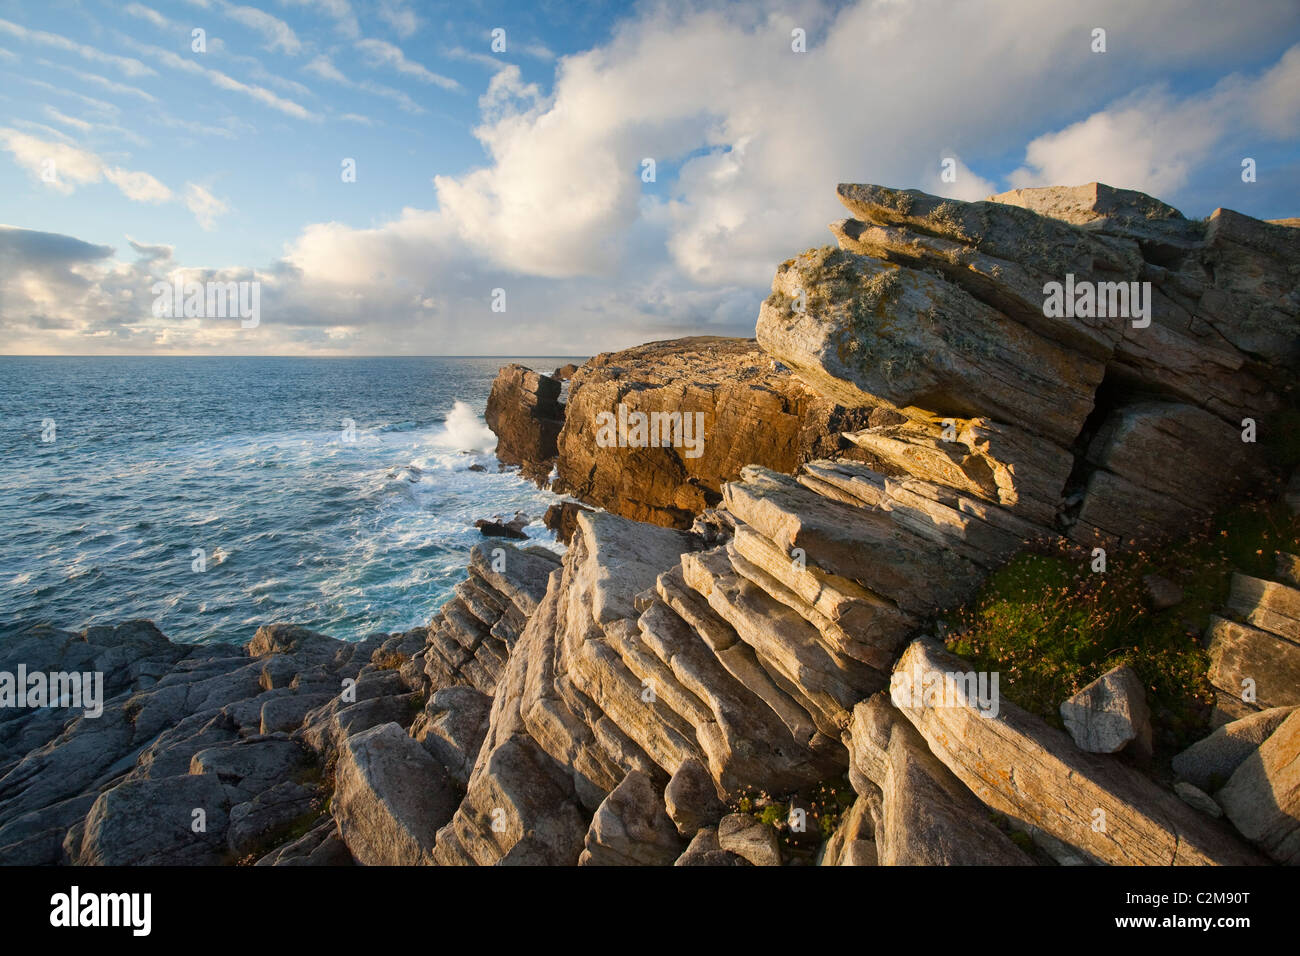 Rocky coastline of the Belmullet Peninsula, County Mayo, Ireland. - Stock Image